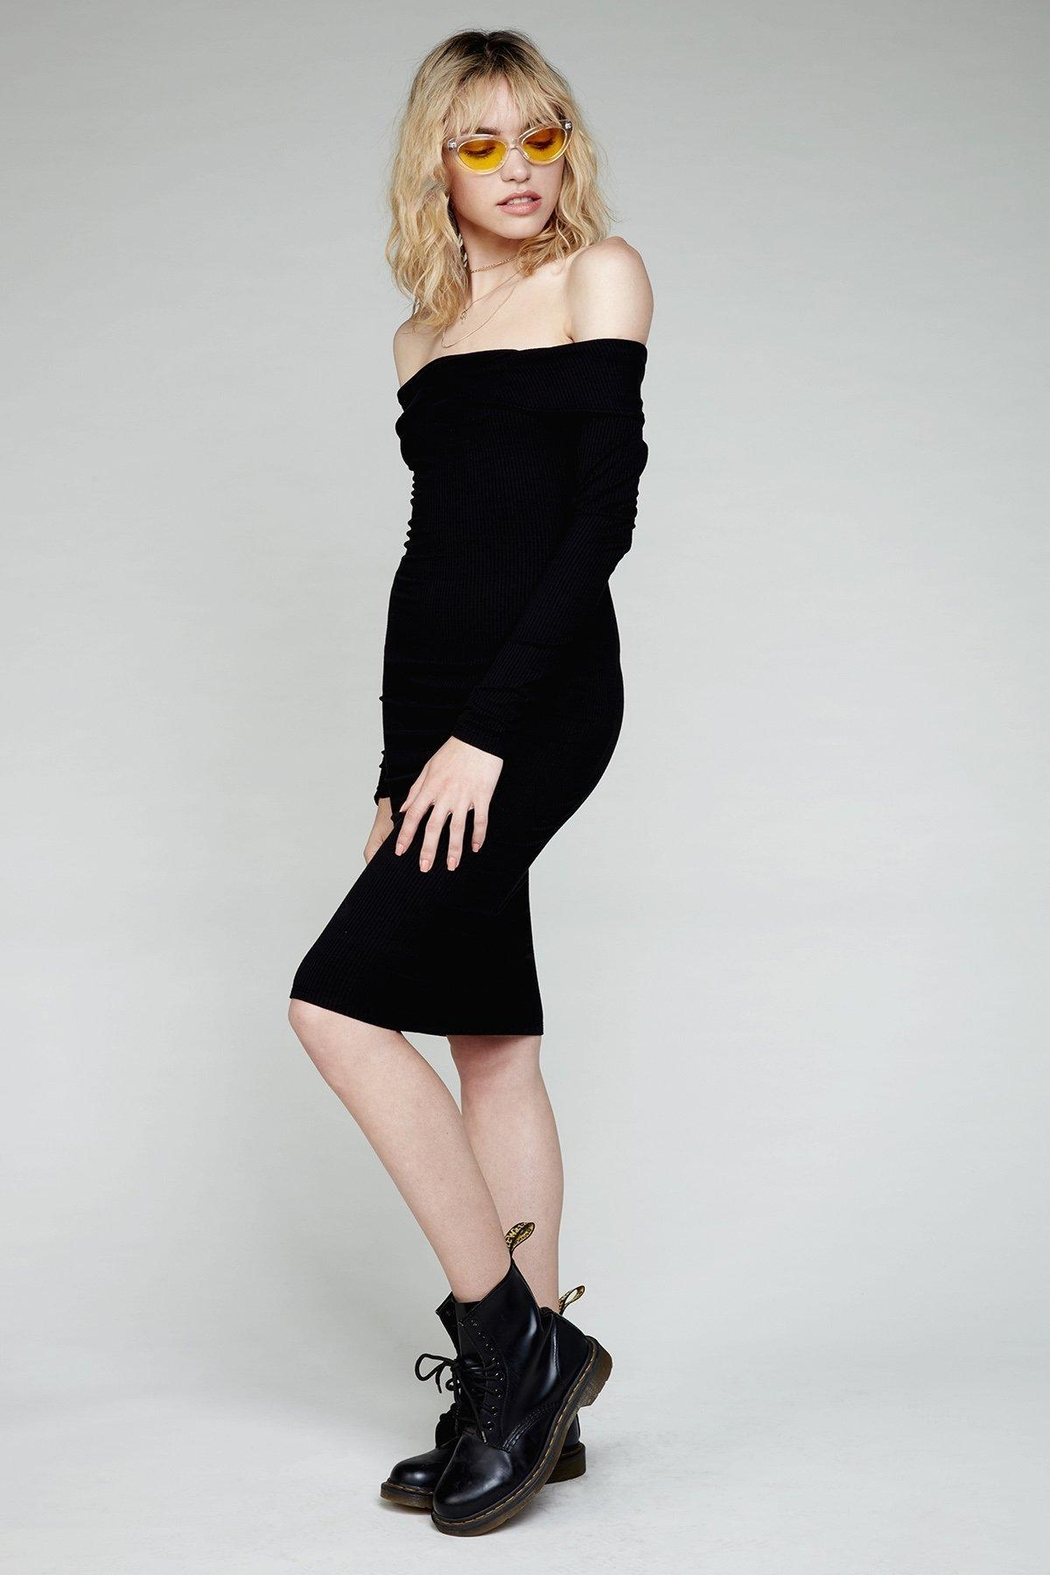 Flynn Skye Natasha Black Dress - Front Full Image